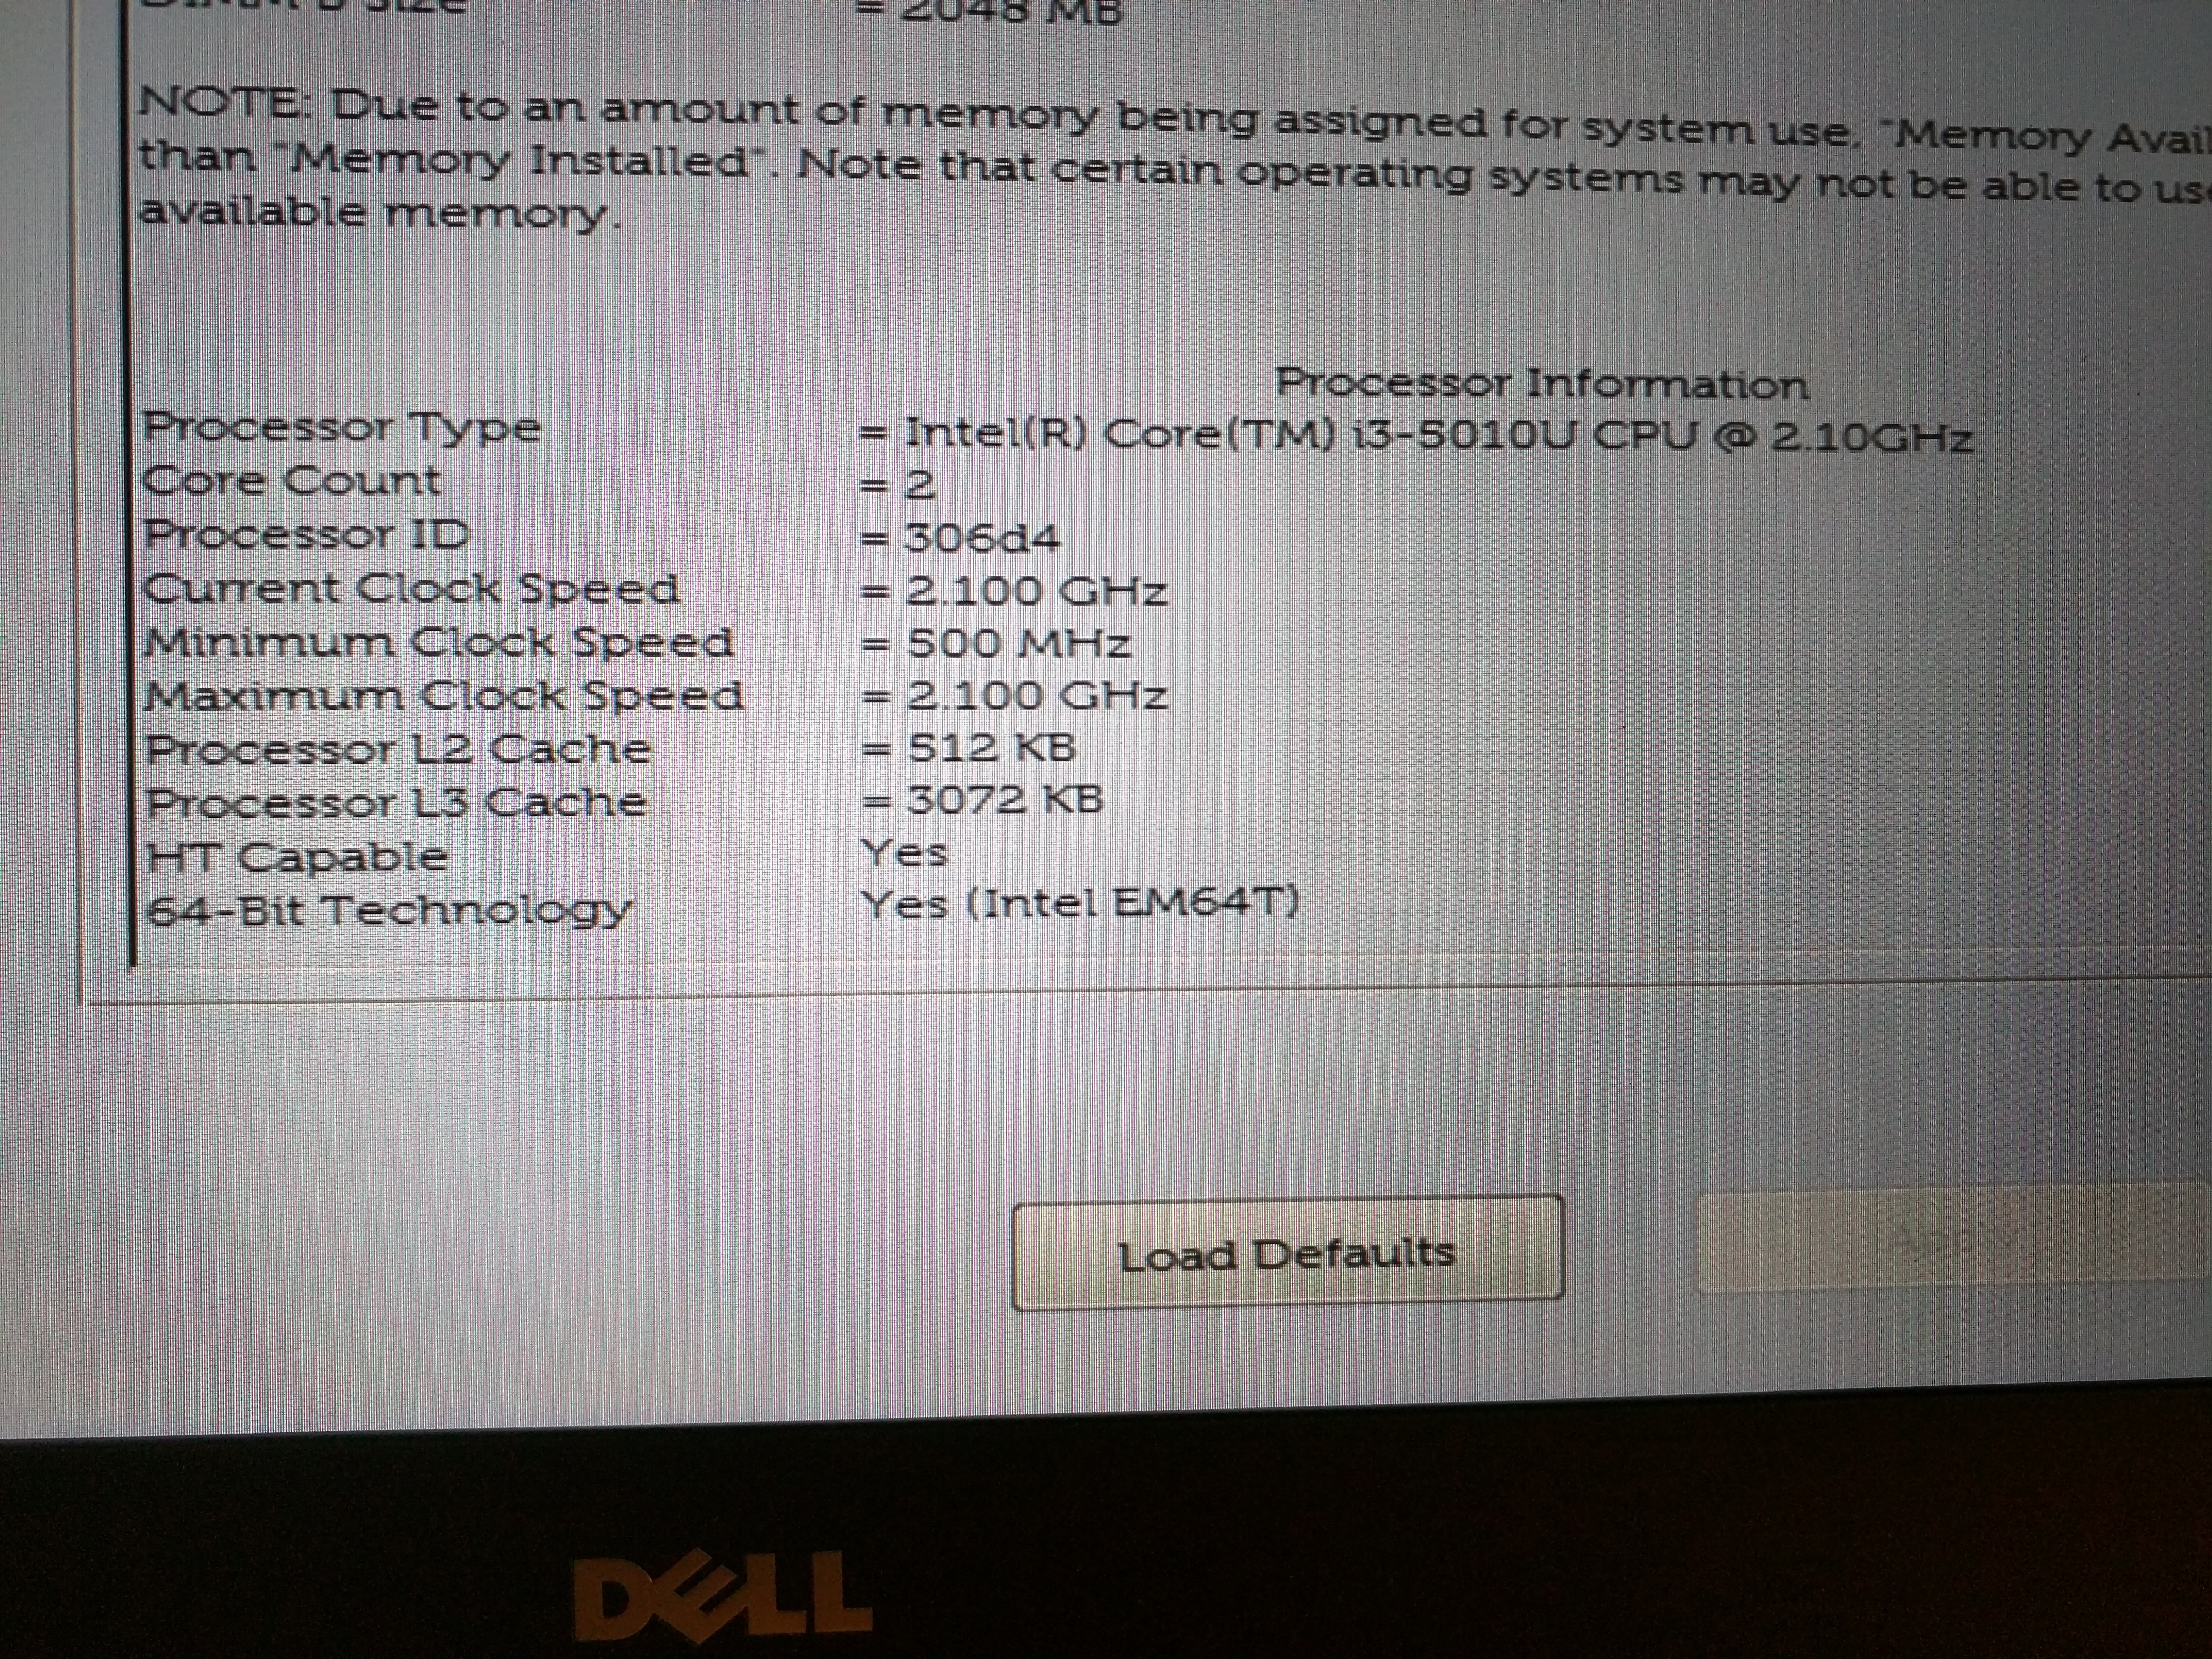 XPS 13 CPU and system info in the Dell UEFI BIOS screen